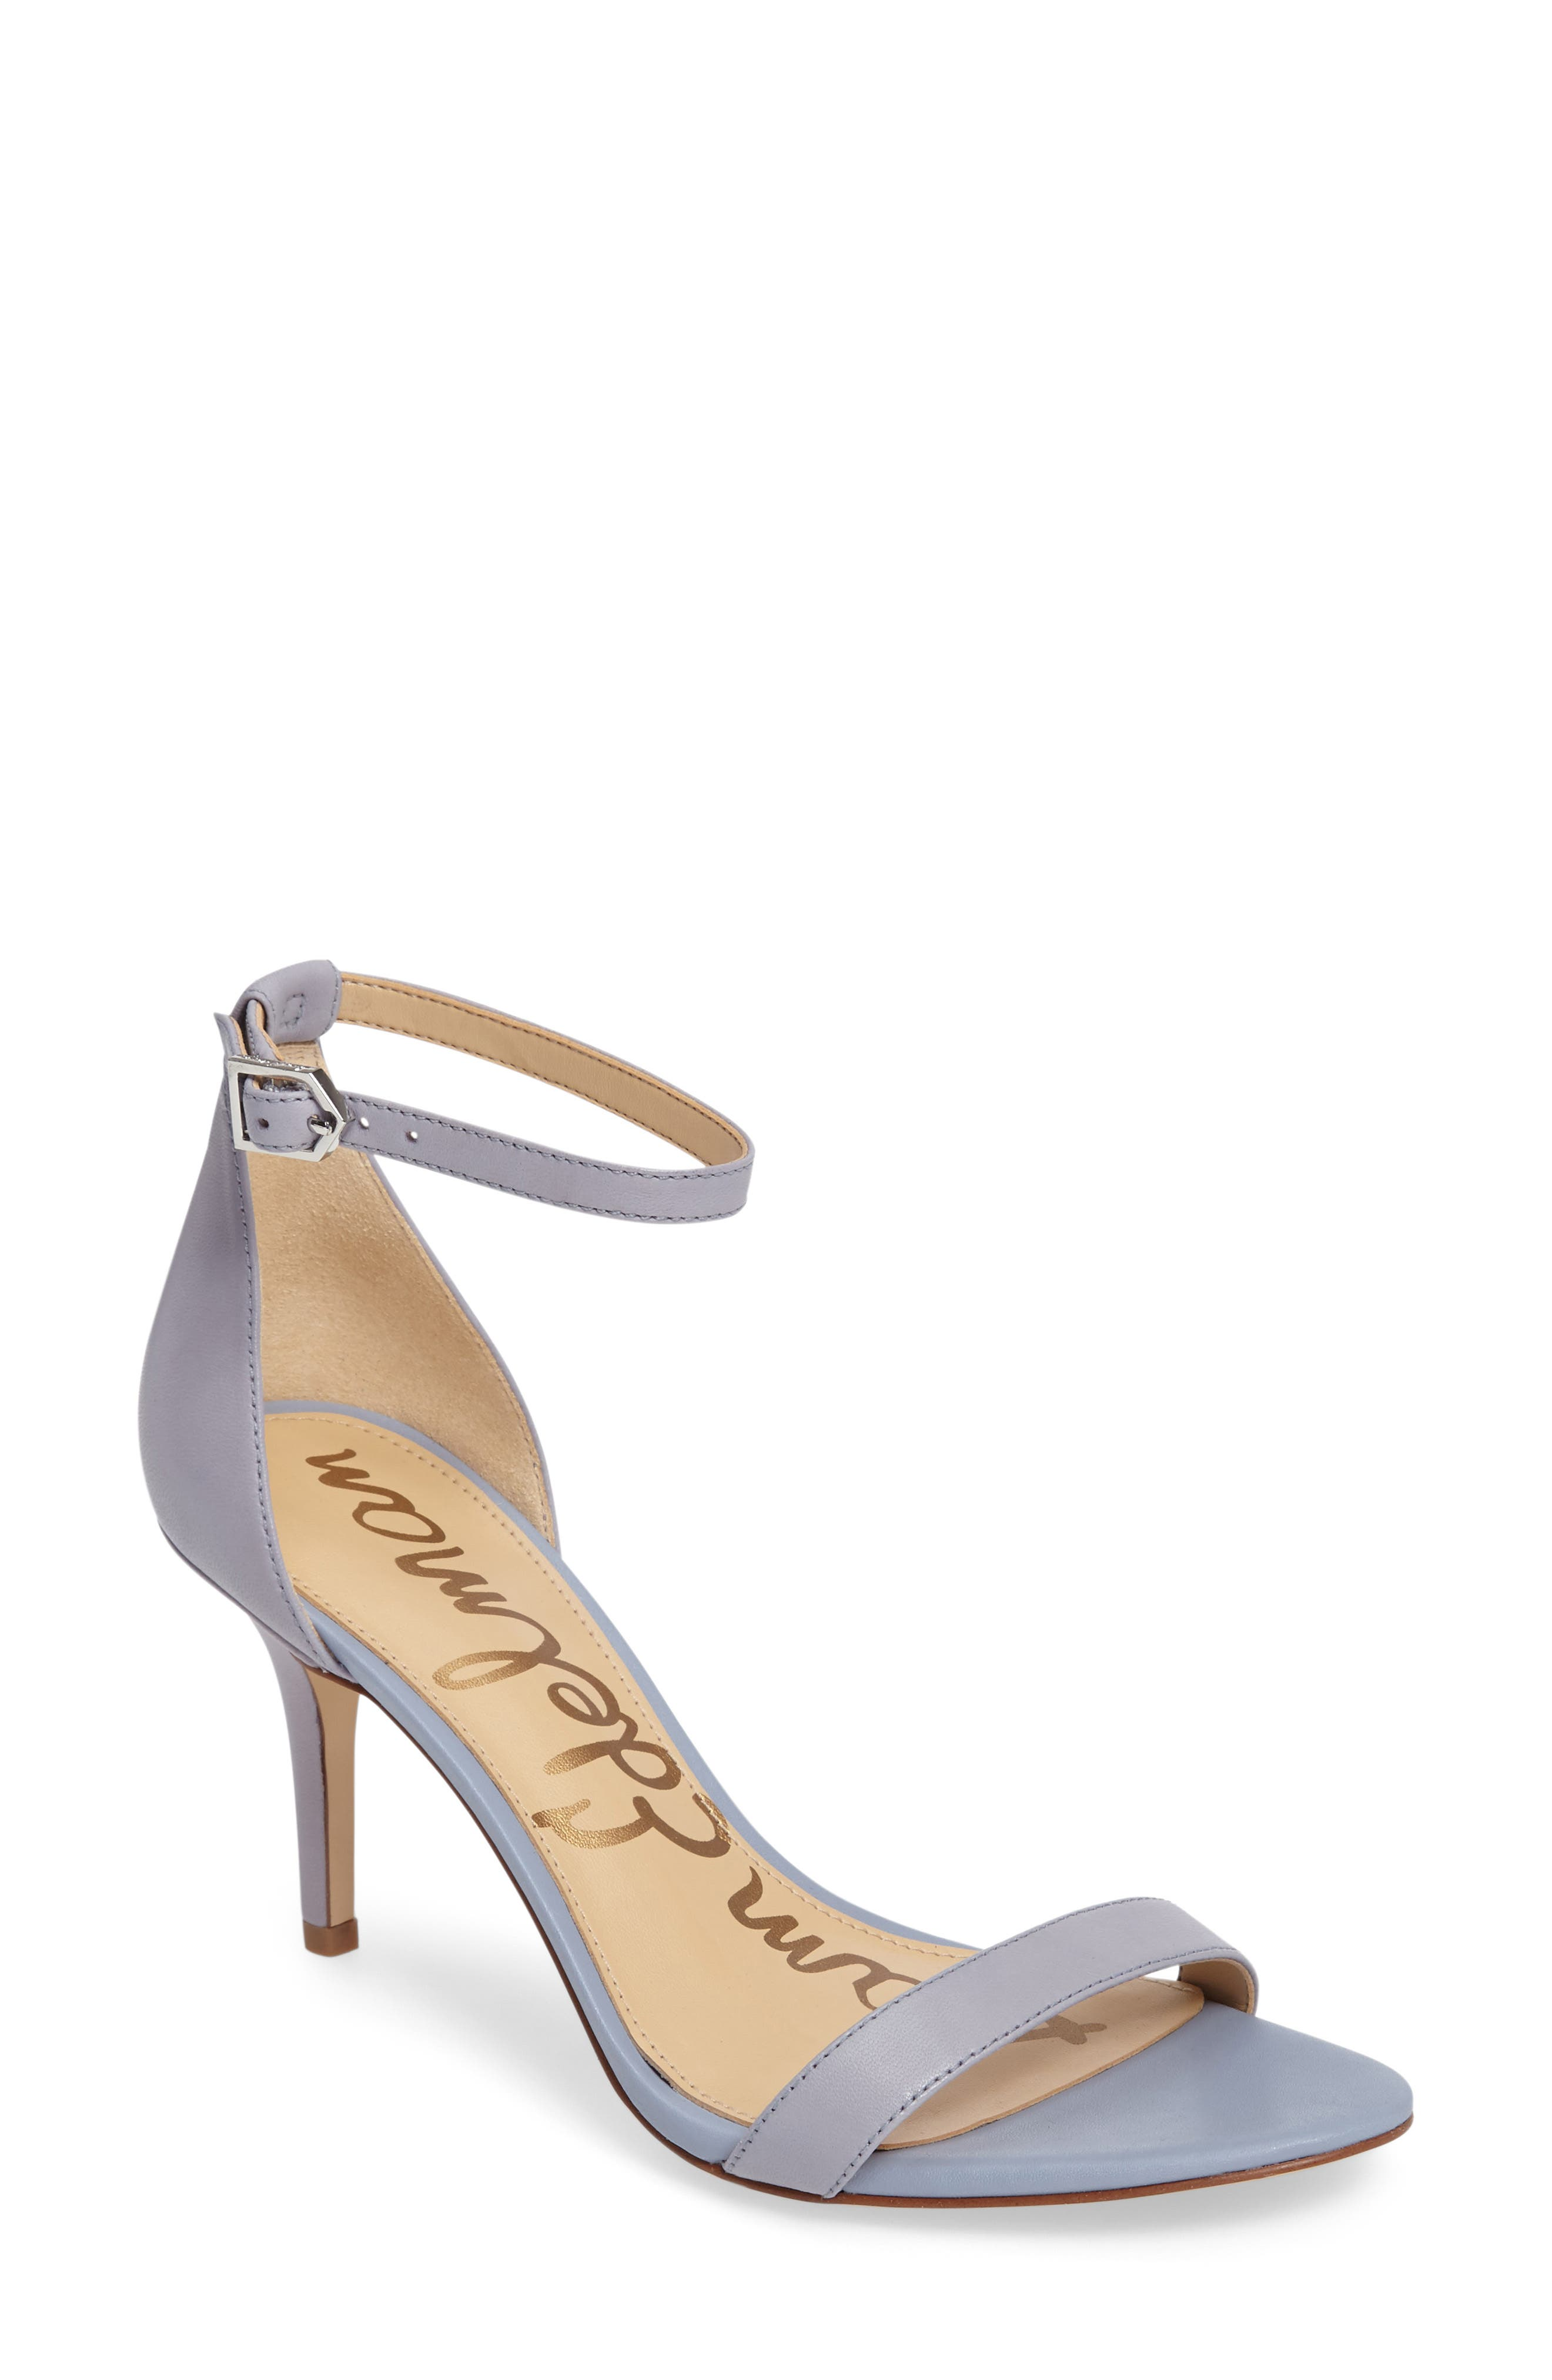 Main Image - Sam Edelman Patti Strappy Sandal (Women)